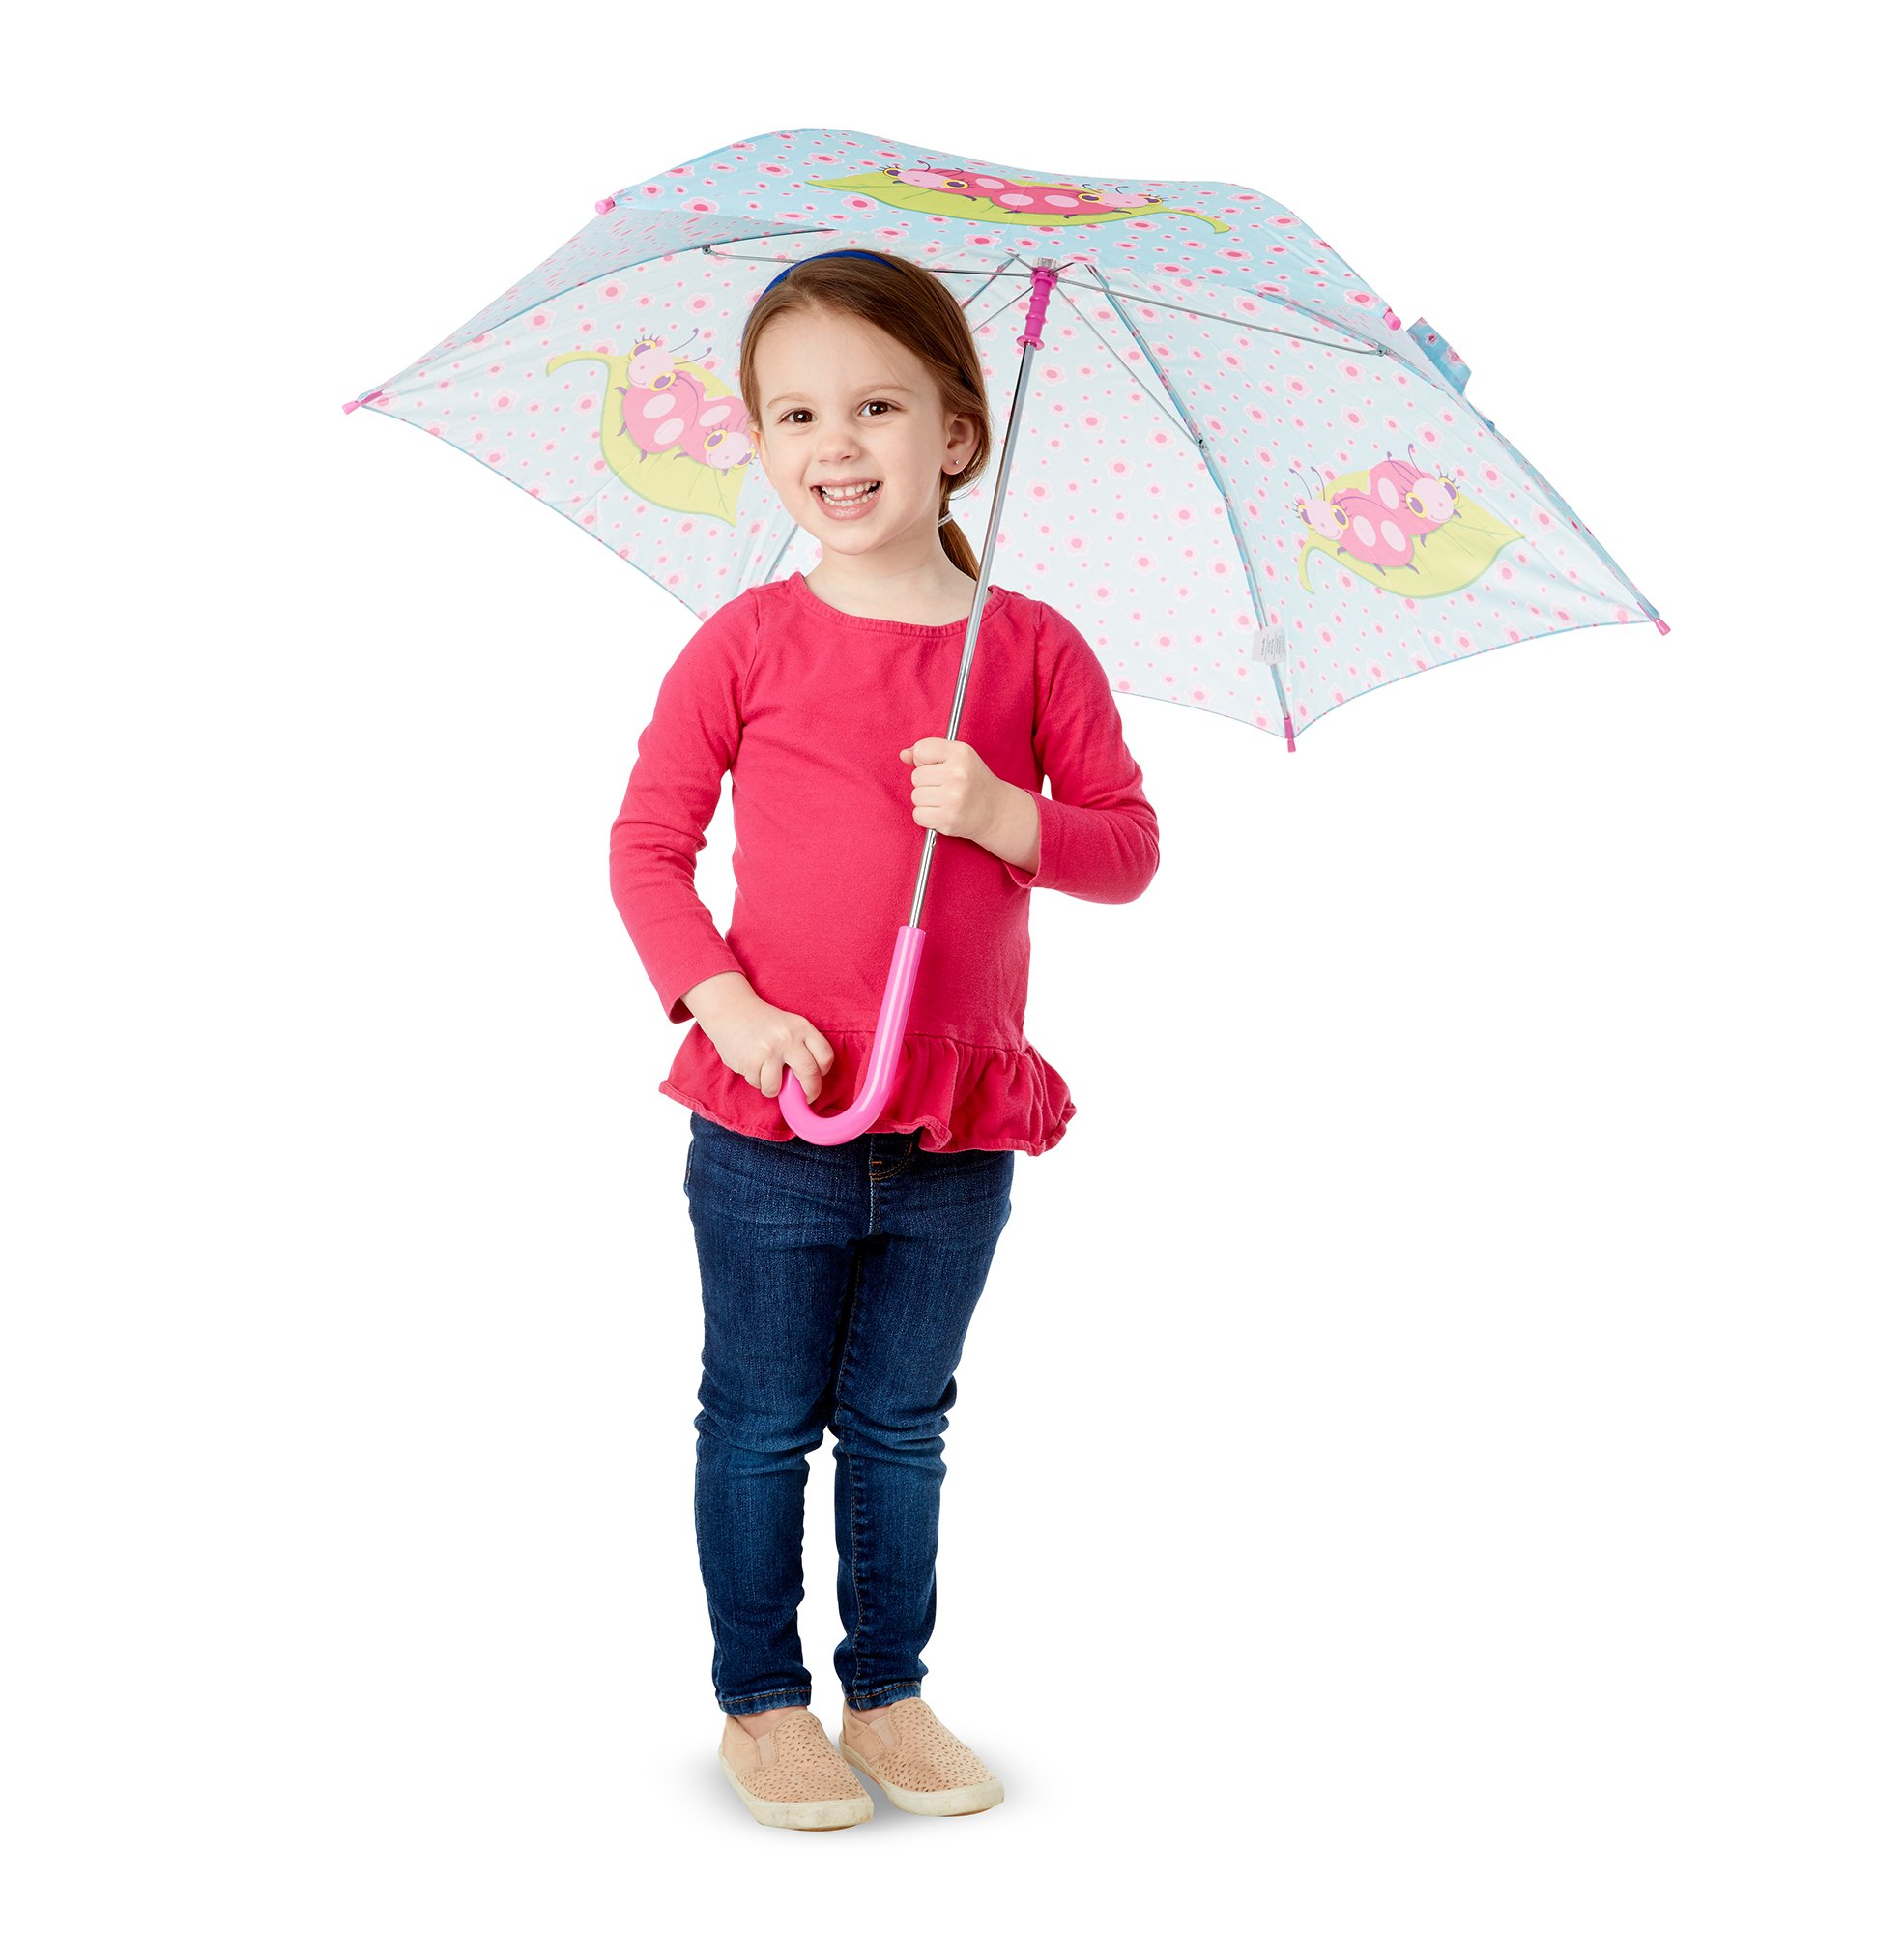 Melissa & Doug Trixie Ladybug Umbrella for Kids With Safety Open and Close